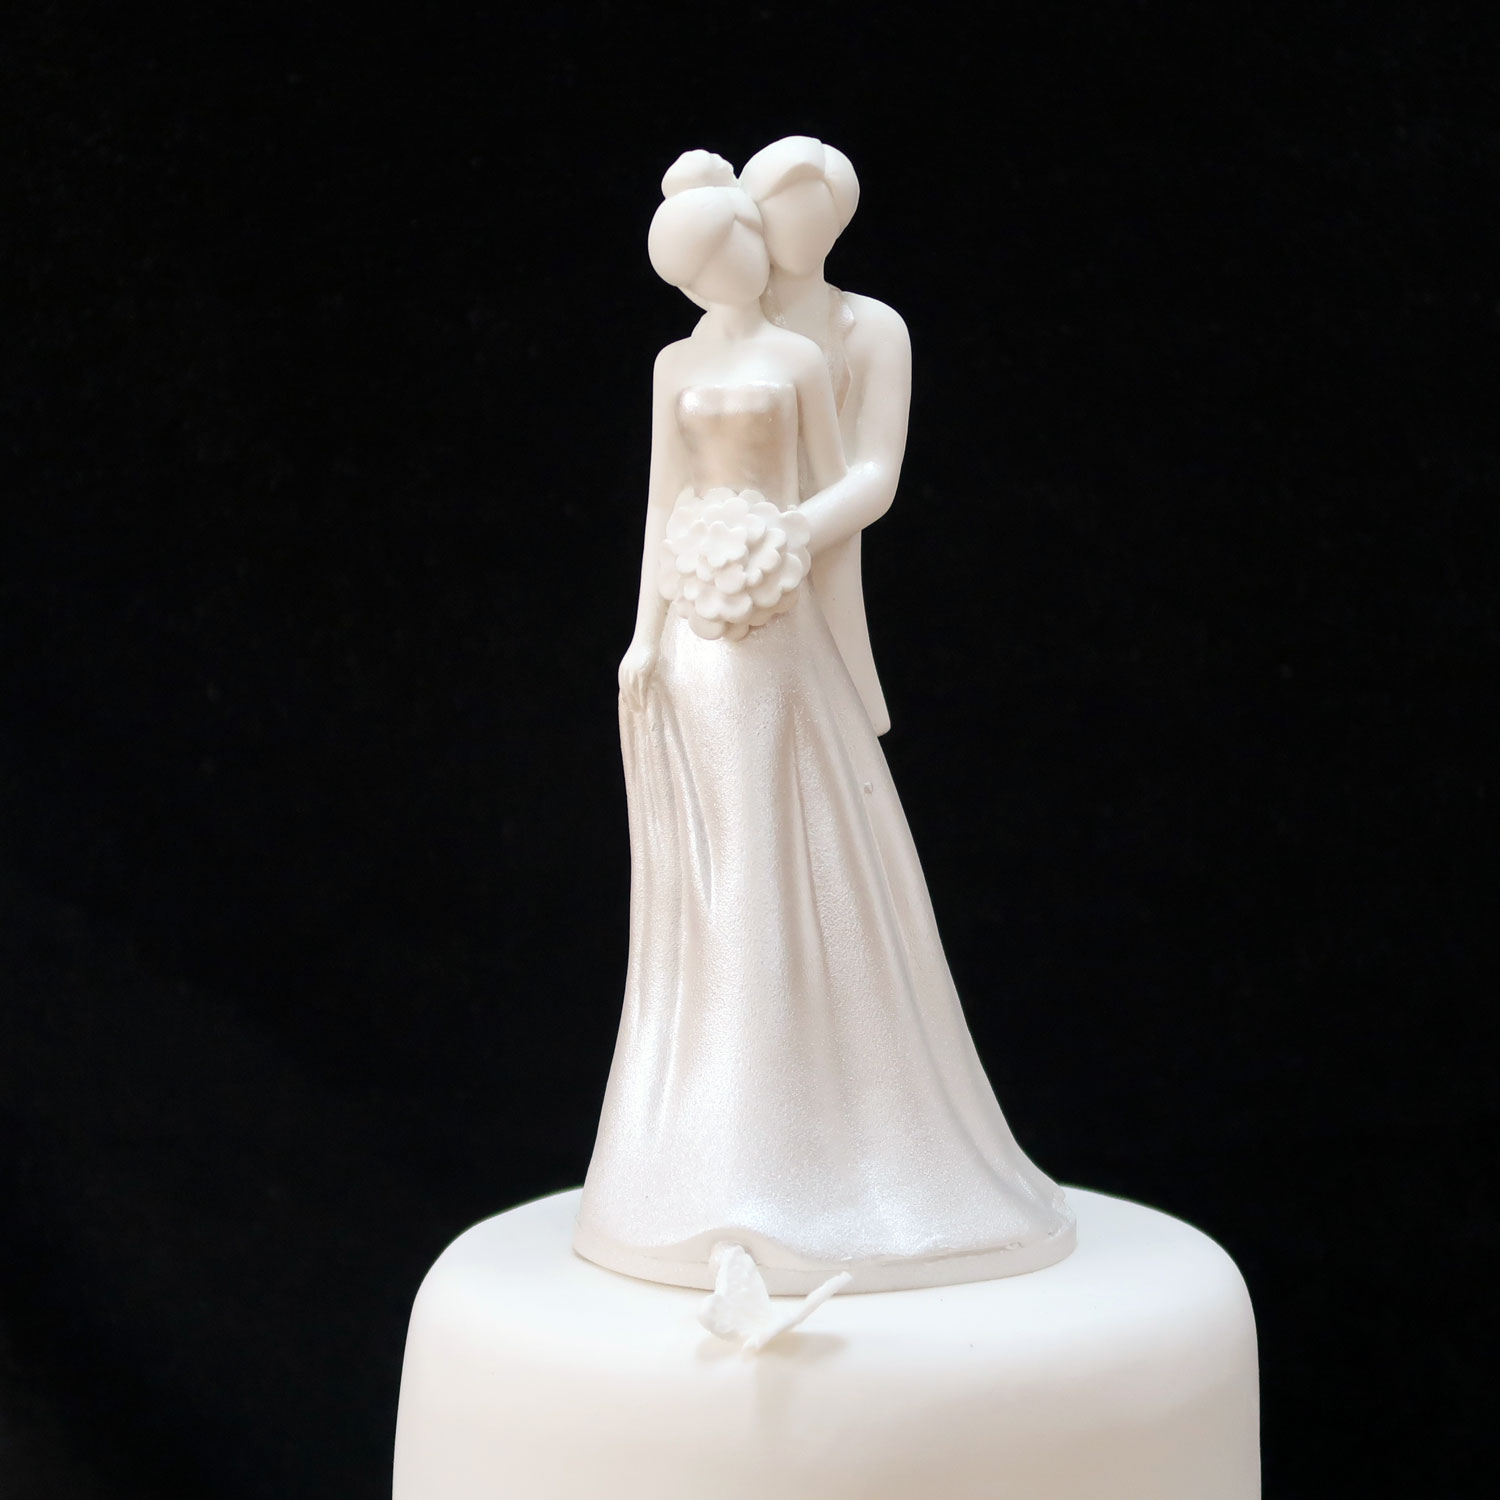 Cake Toppers Contemporary Wedding Cake Toppers Bride and Groom